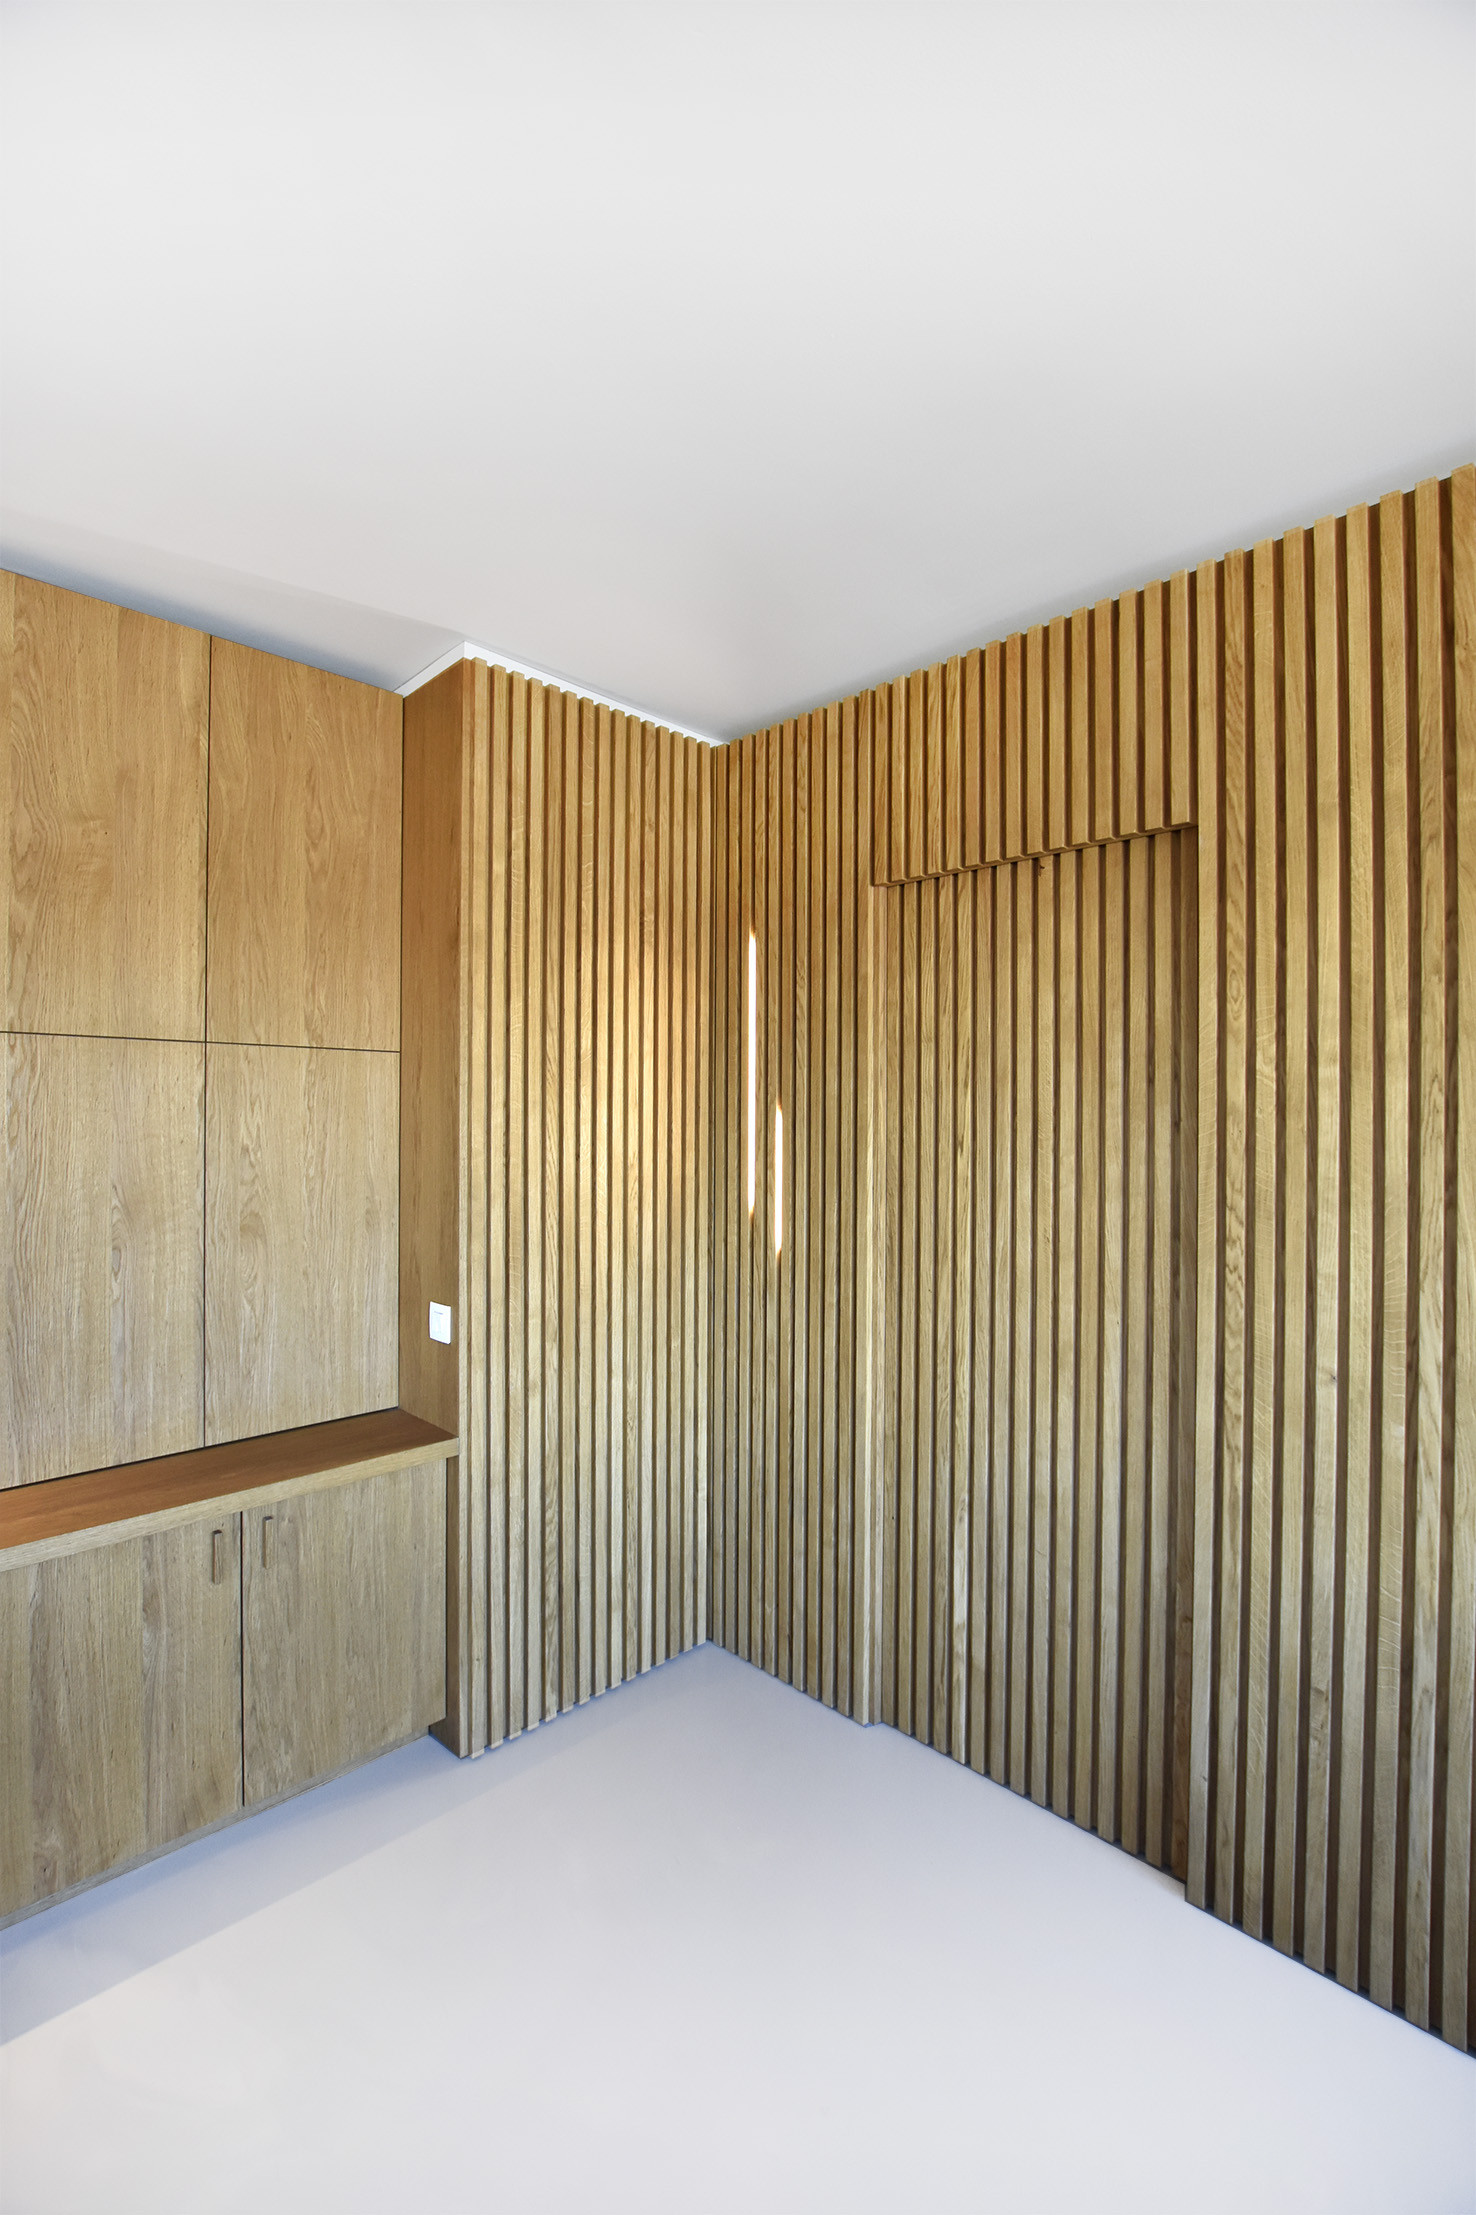 Design : Chouettes Architectes - Realisation : Woodblaster